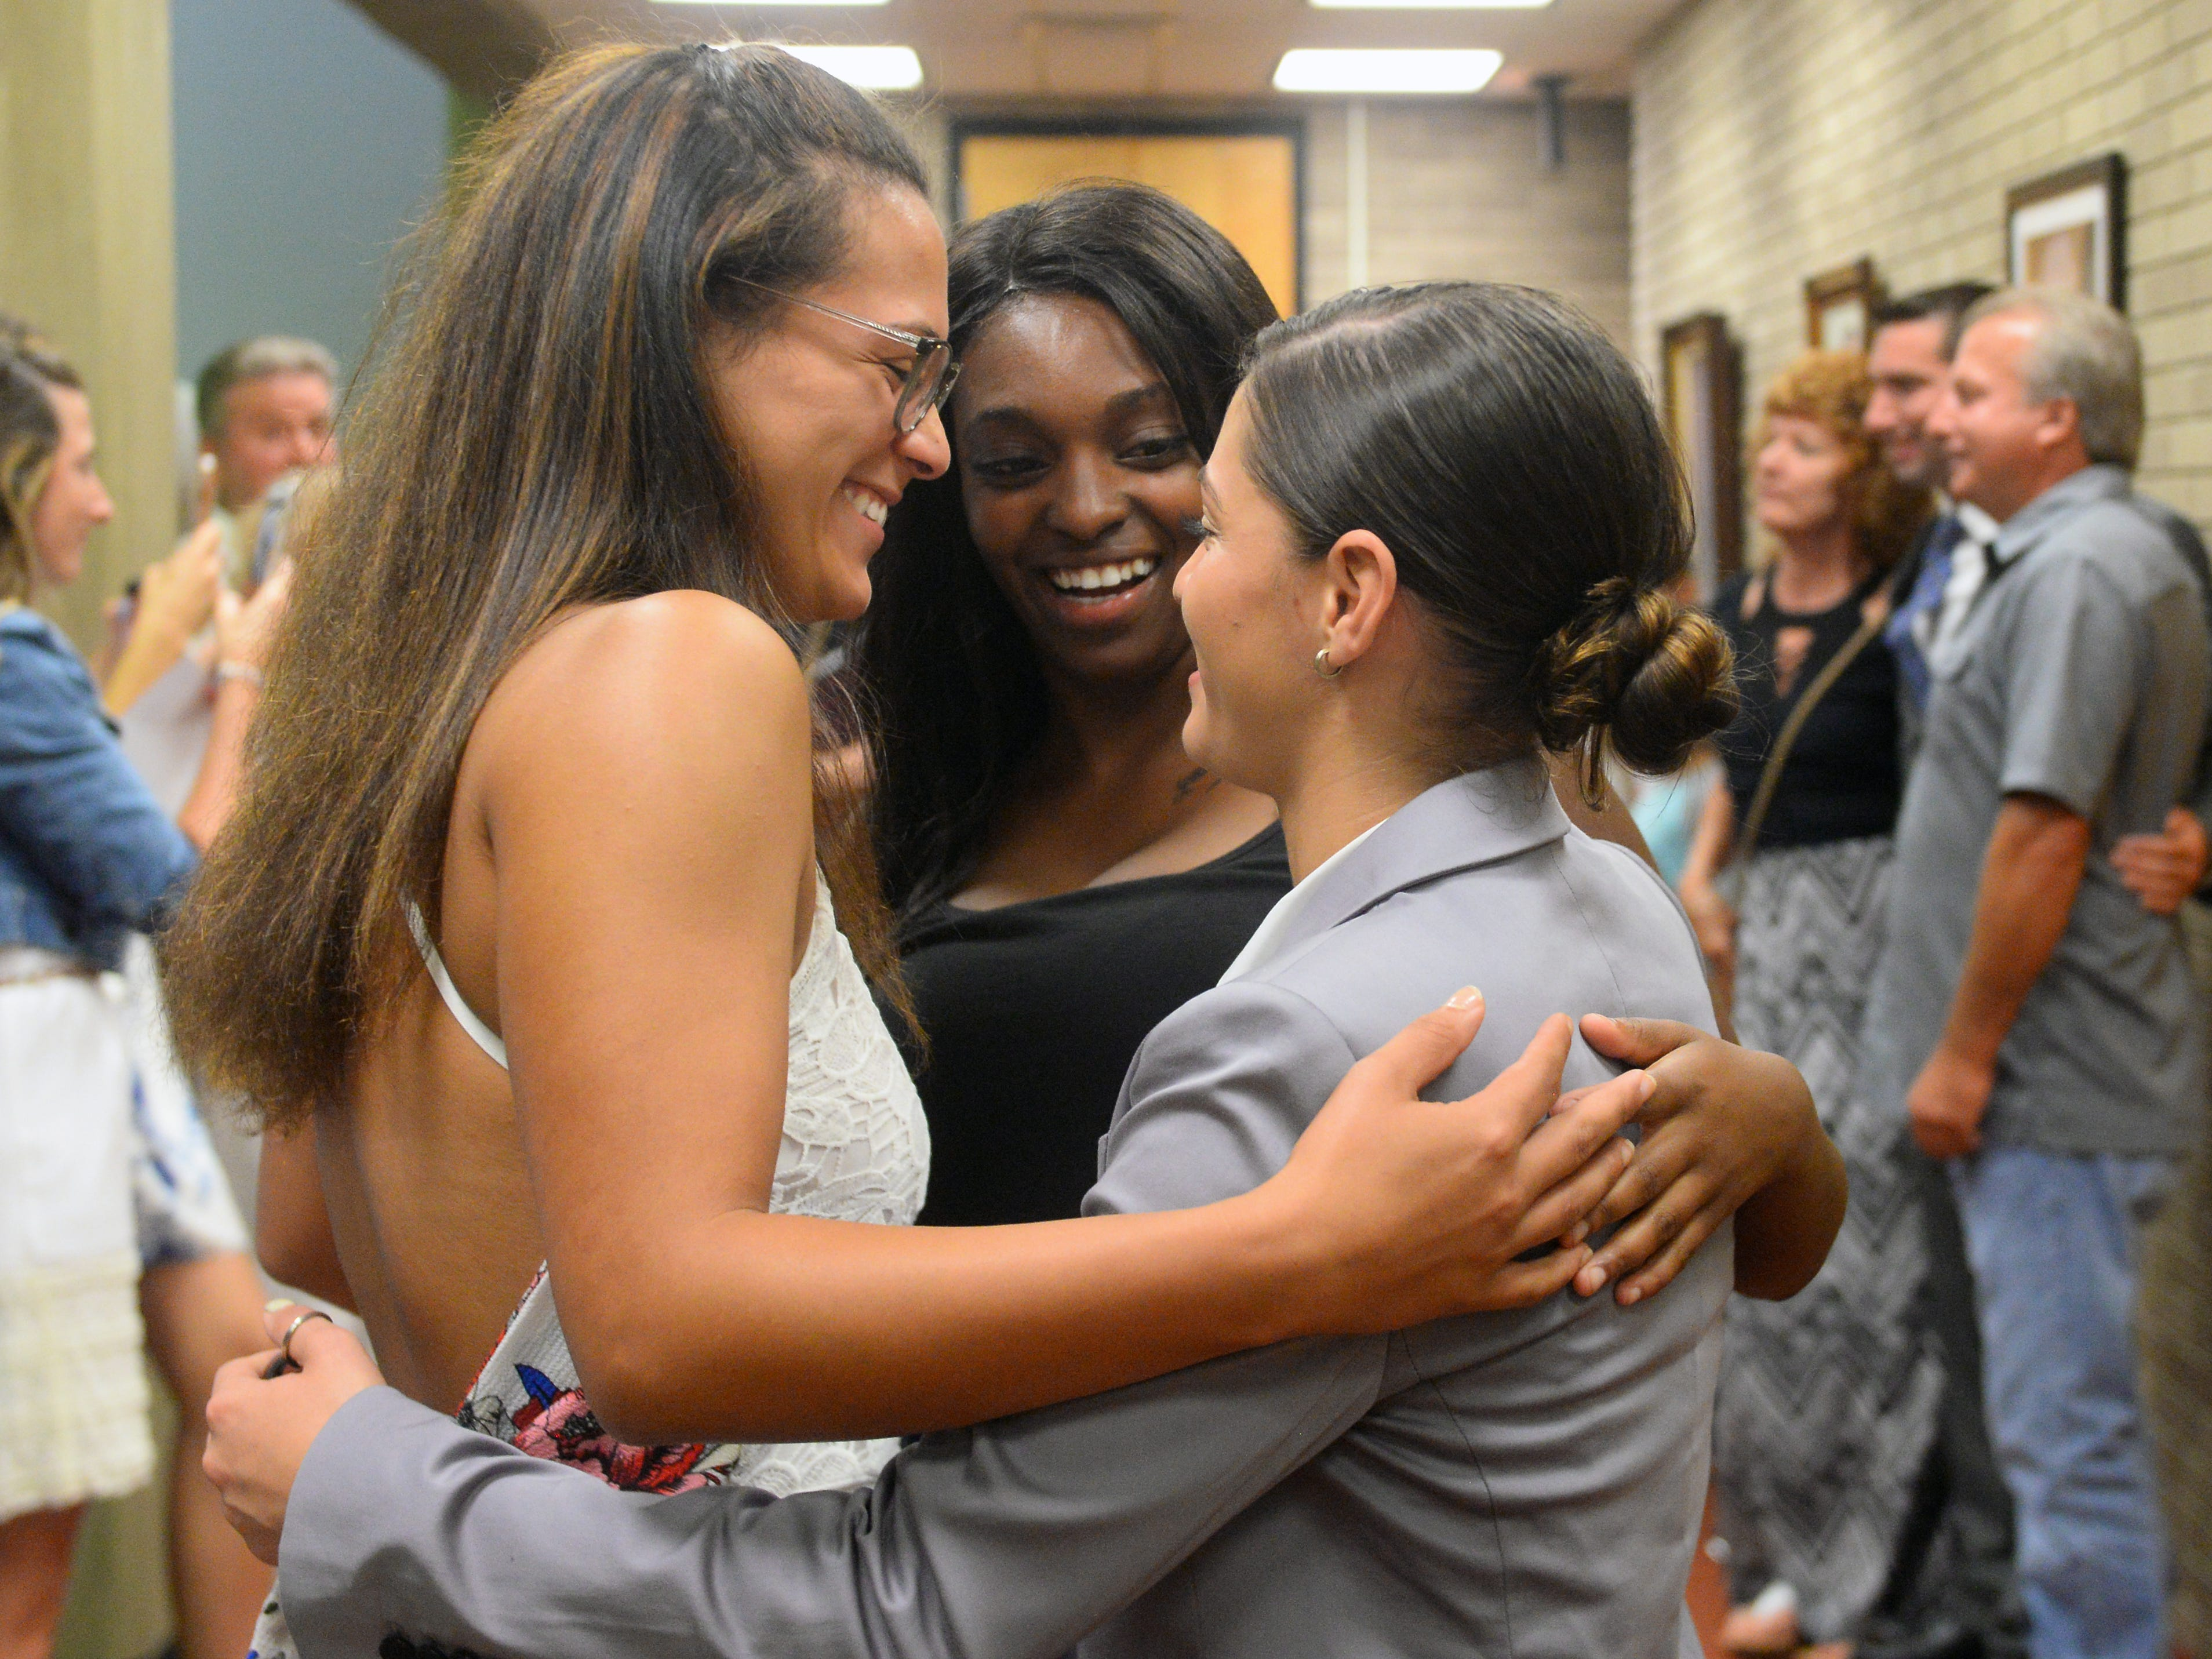 Kaylene Cosme (right) celebrates with her sister (left) Niyah Cosme and friend Cherelle James after being sworn in as a Vineland police recruit at Vineland City Hall on Thursday, August 2.